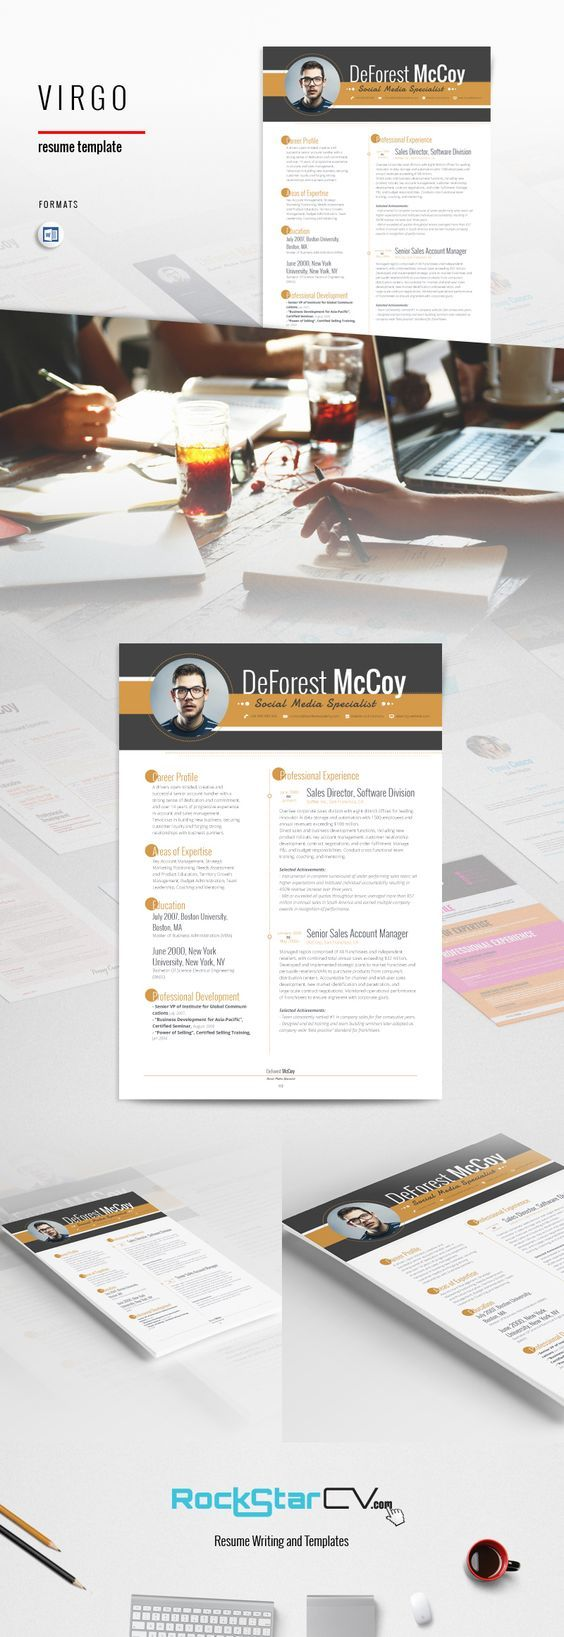 Ats Resume Template%0A BundleResume  u     letter Templates by Profilia Resume Boutique on   creativemarket   NRWA Members Board   Pinterest   Letter templates  Career  and Resume cover